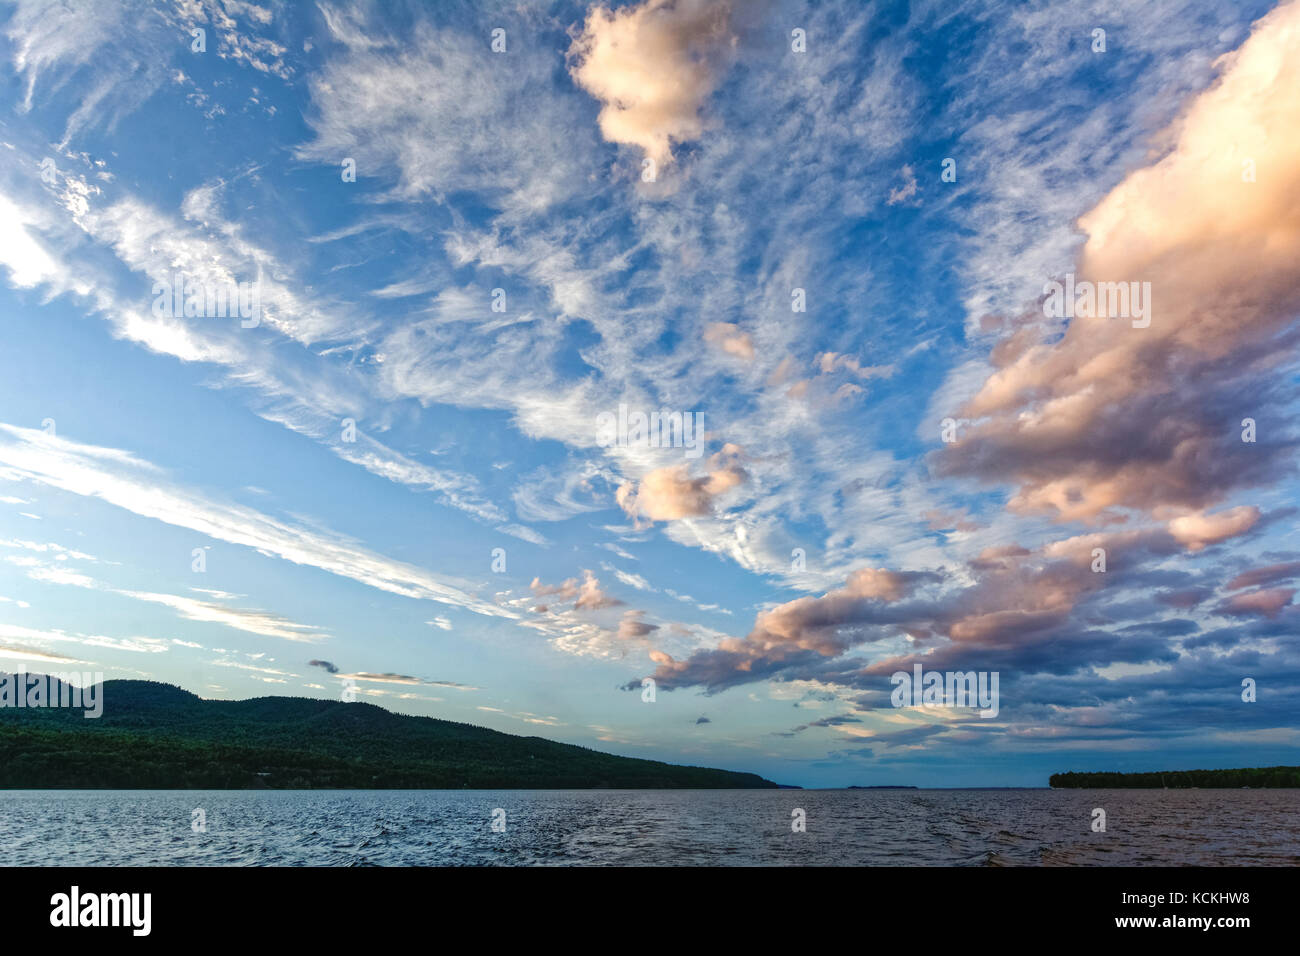 Dramatic sky with clouds pattern at Lake Champlain - Stock Image